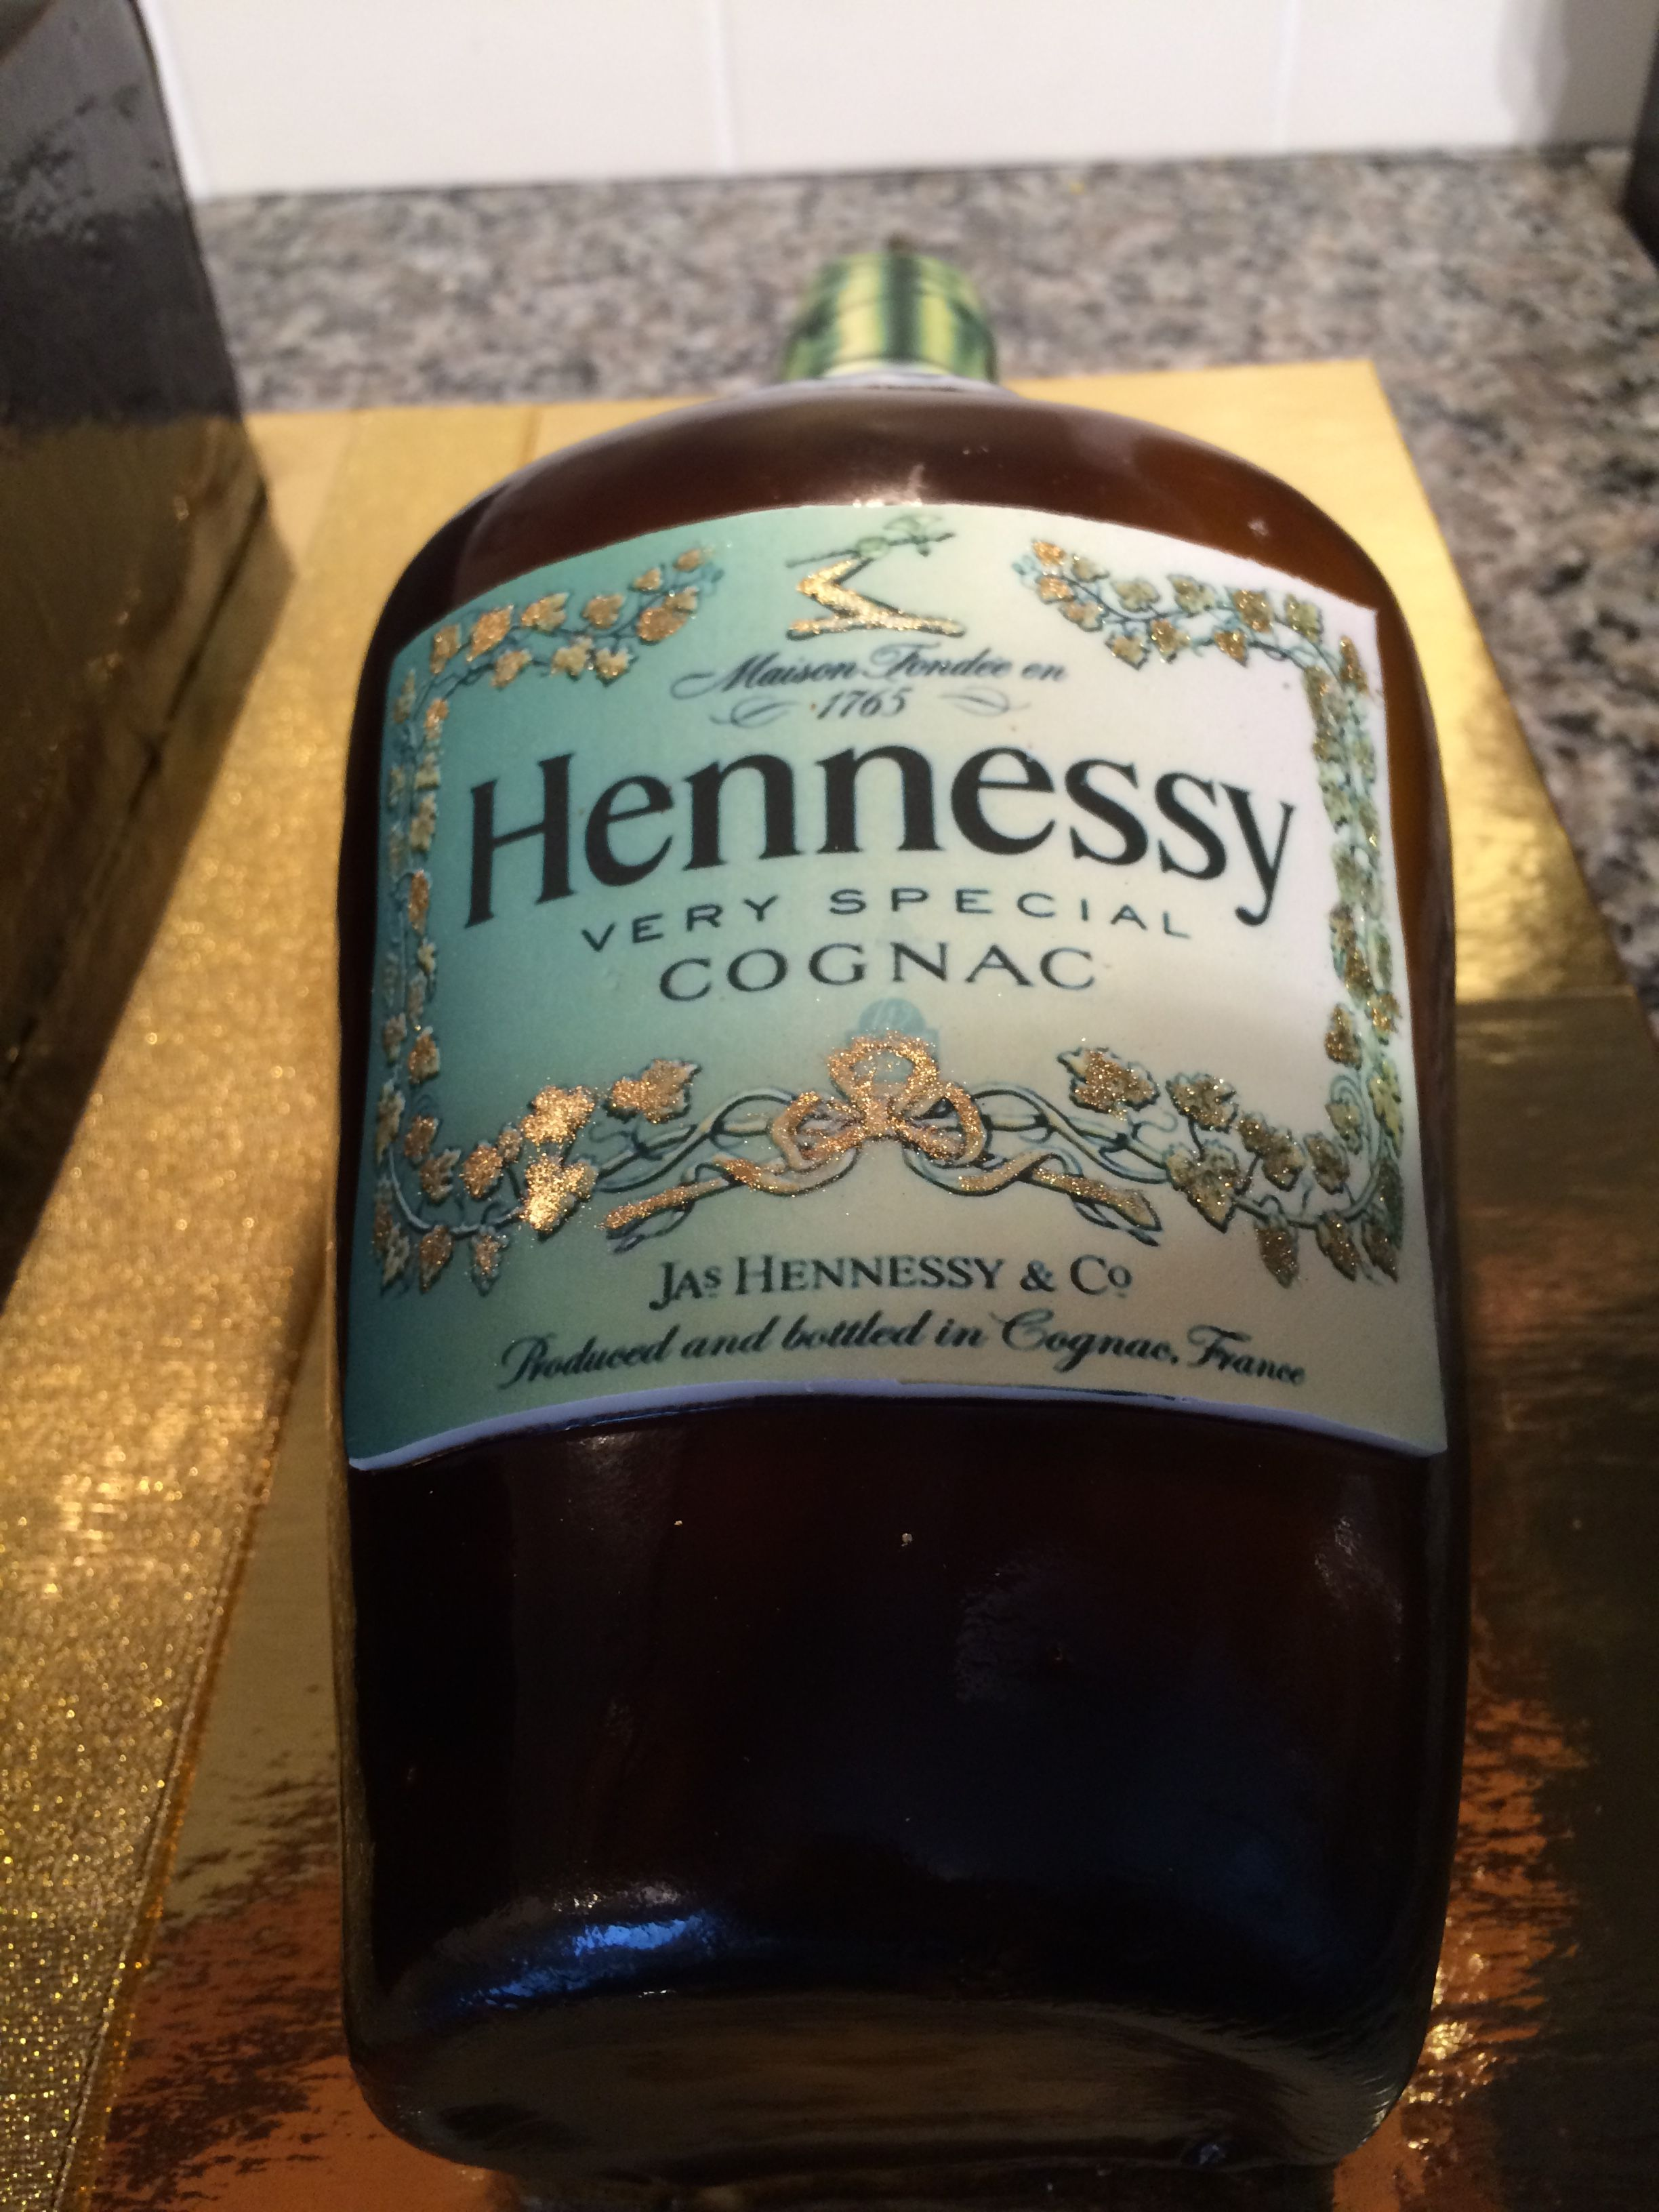 Hennessey bottle cake - labels were photoshopped and printed